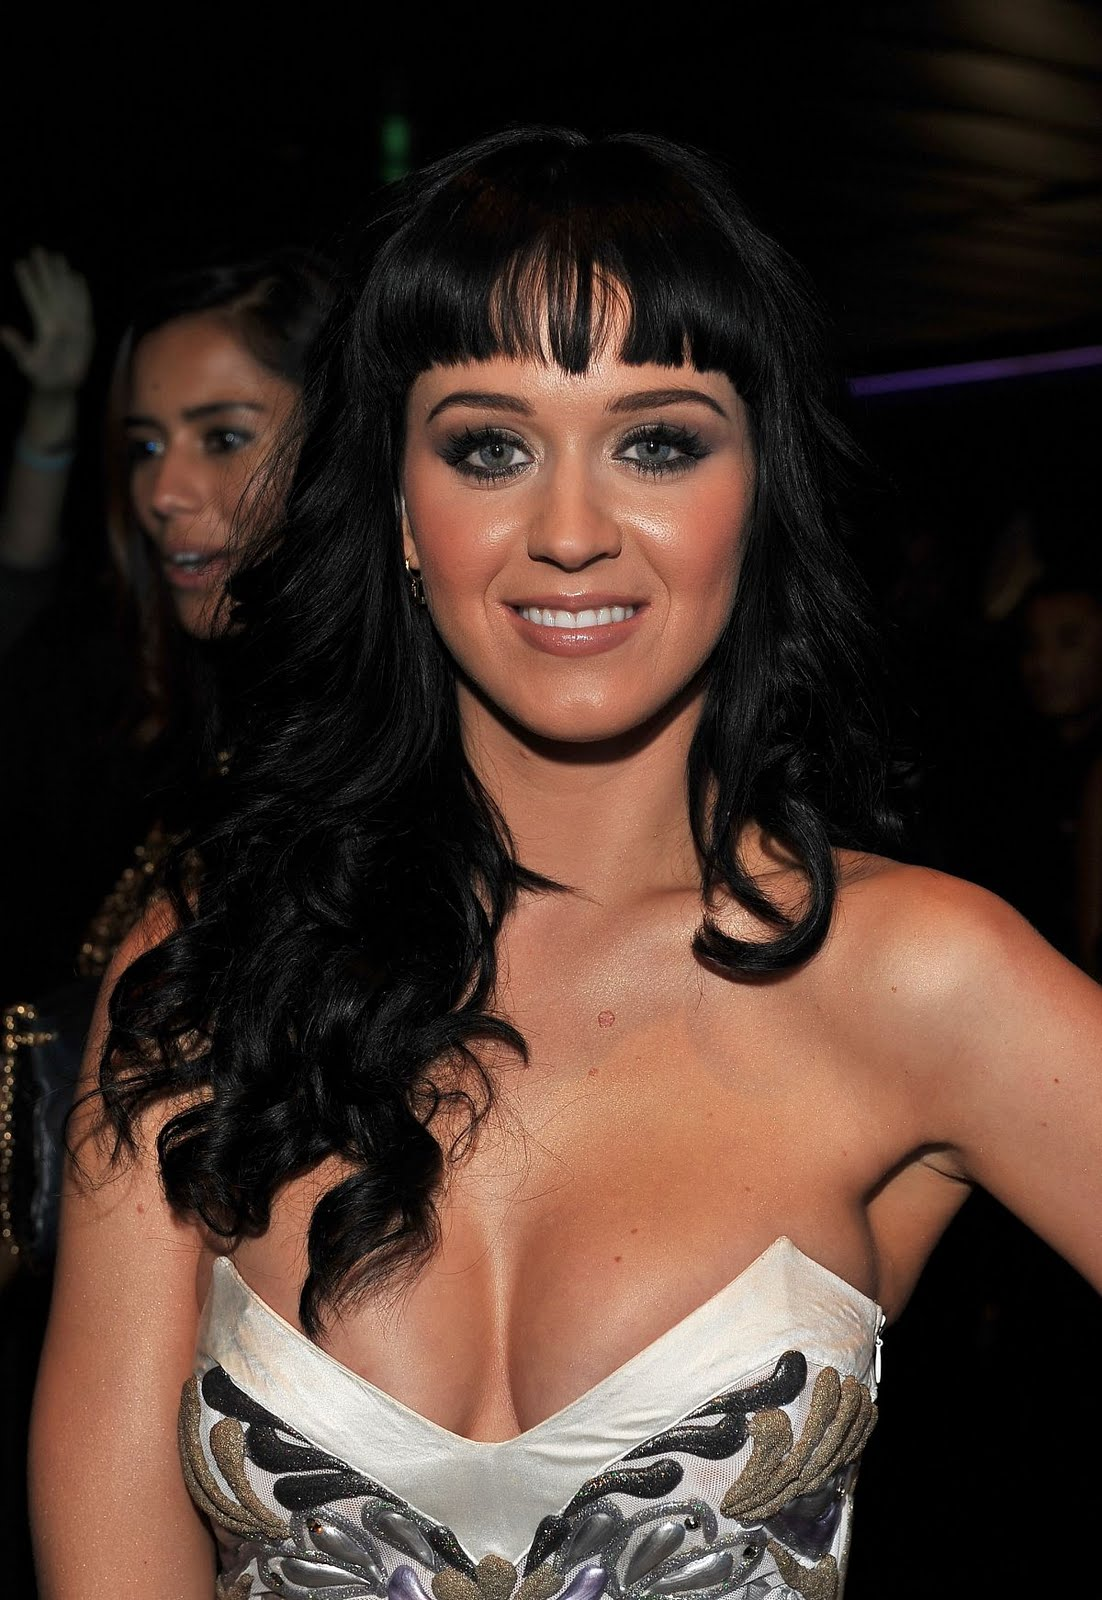 http://3.bp.blogspot.com/_mZdKbx-D5gY/TQtO9yDmZZI/AAAAAAAAA1Q/qcYMYZUO_bM/s1600/katy-perry-grammy-nominations-2010-pictures-2.jpg